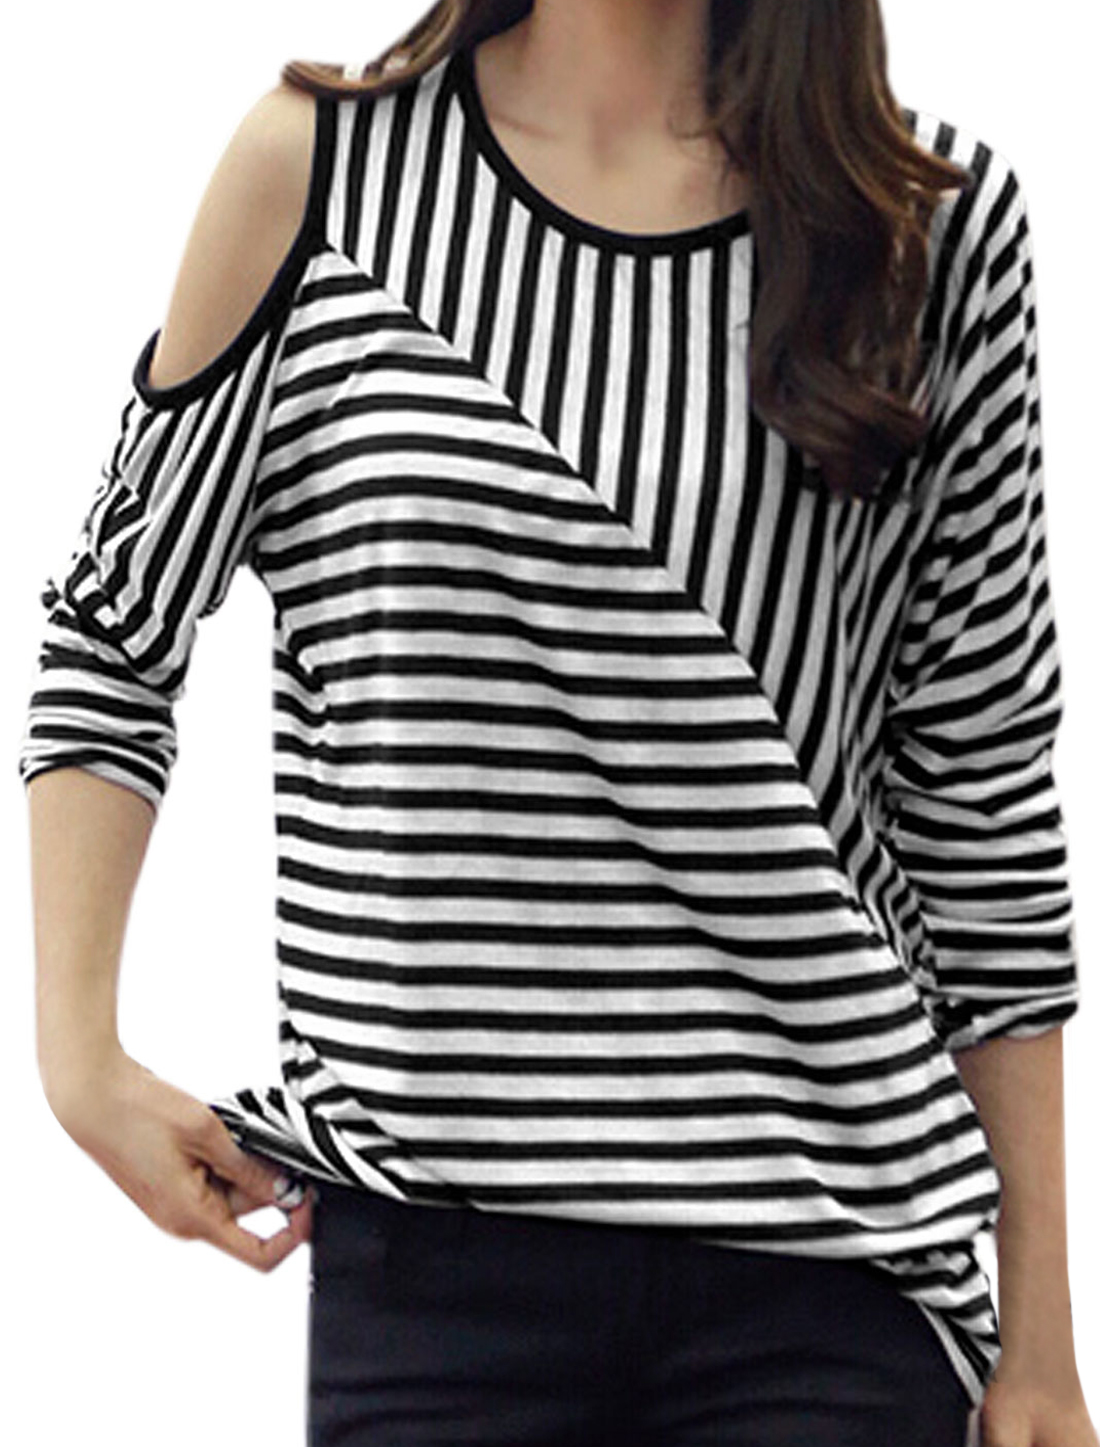 Women Stripes Cut Out Shoulder Batwing Sleeves Tunic Top Black White S